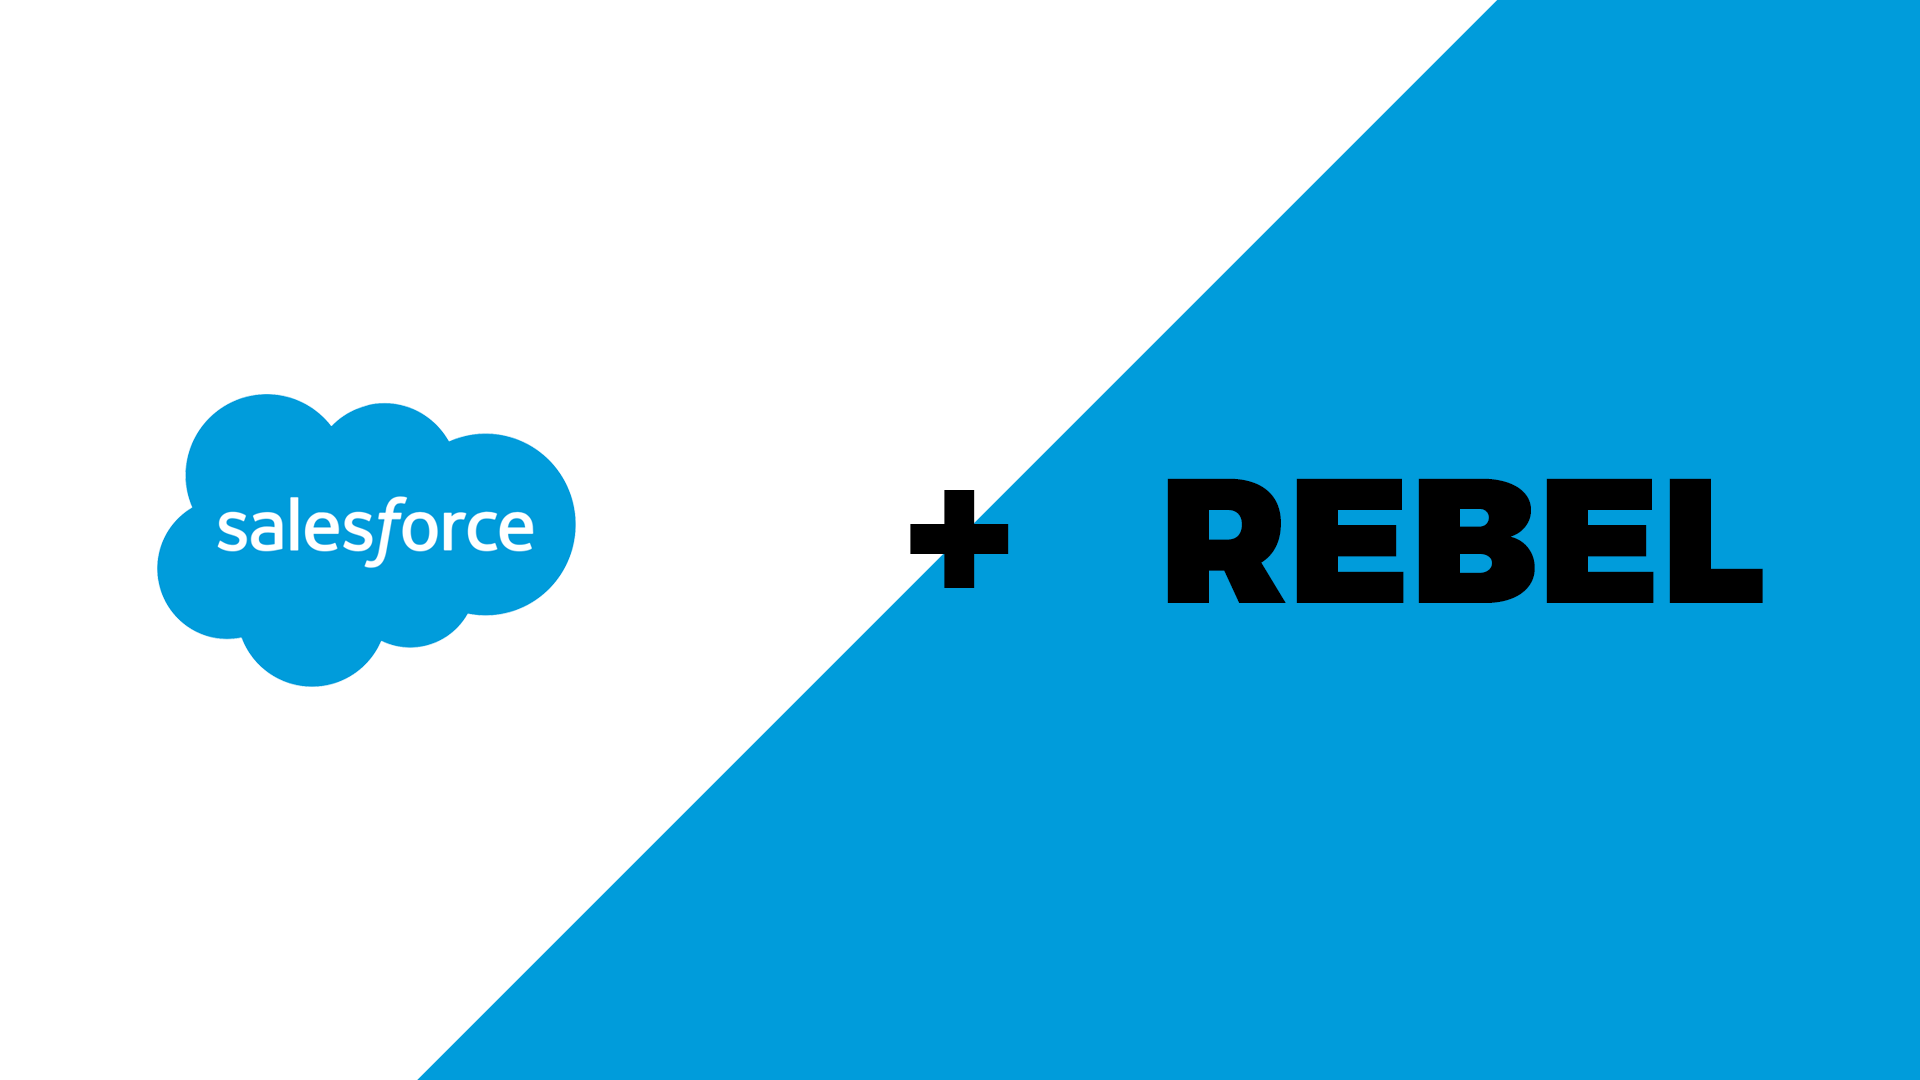 salesforce rebel.png